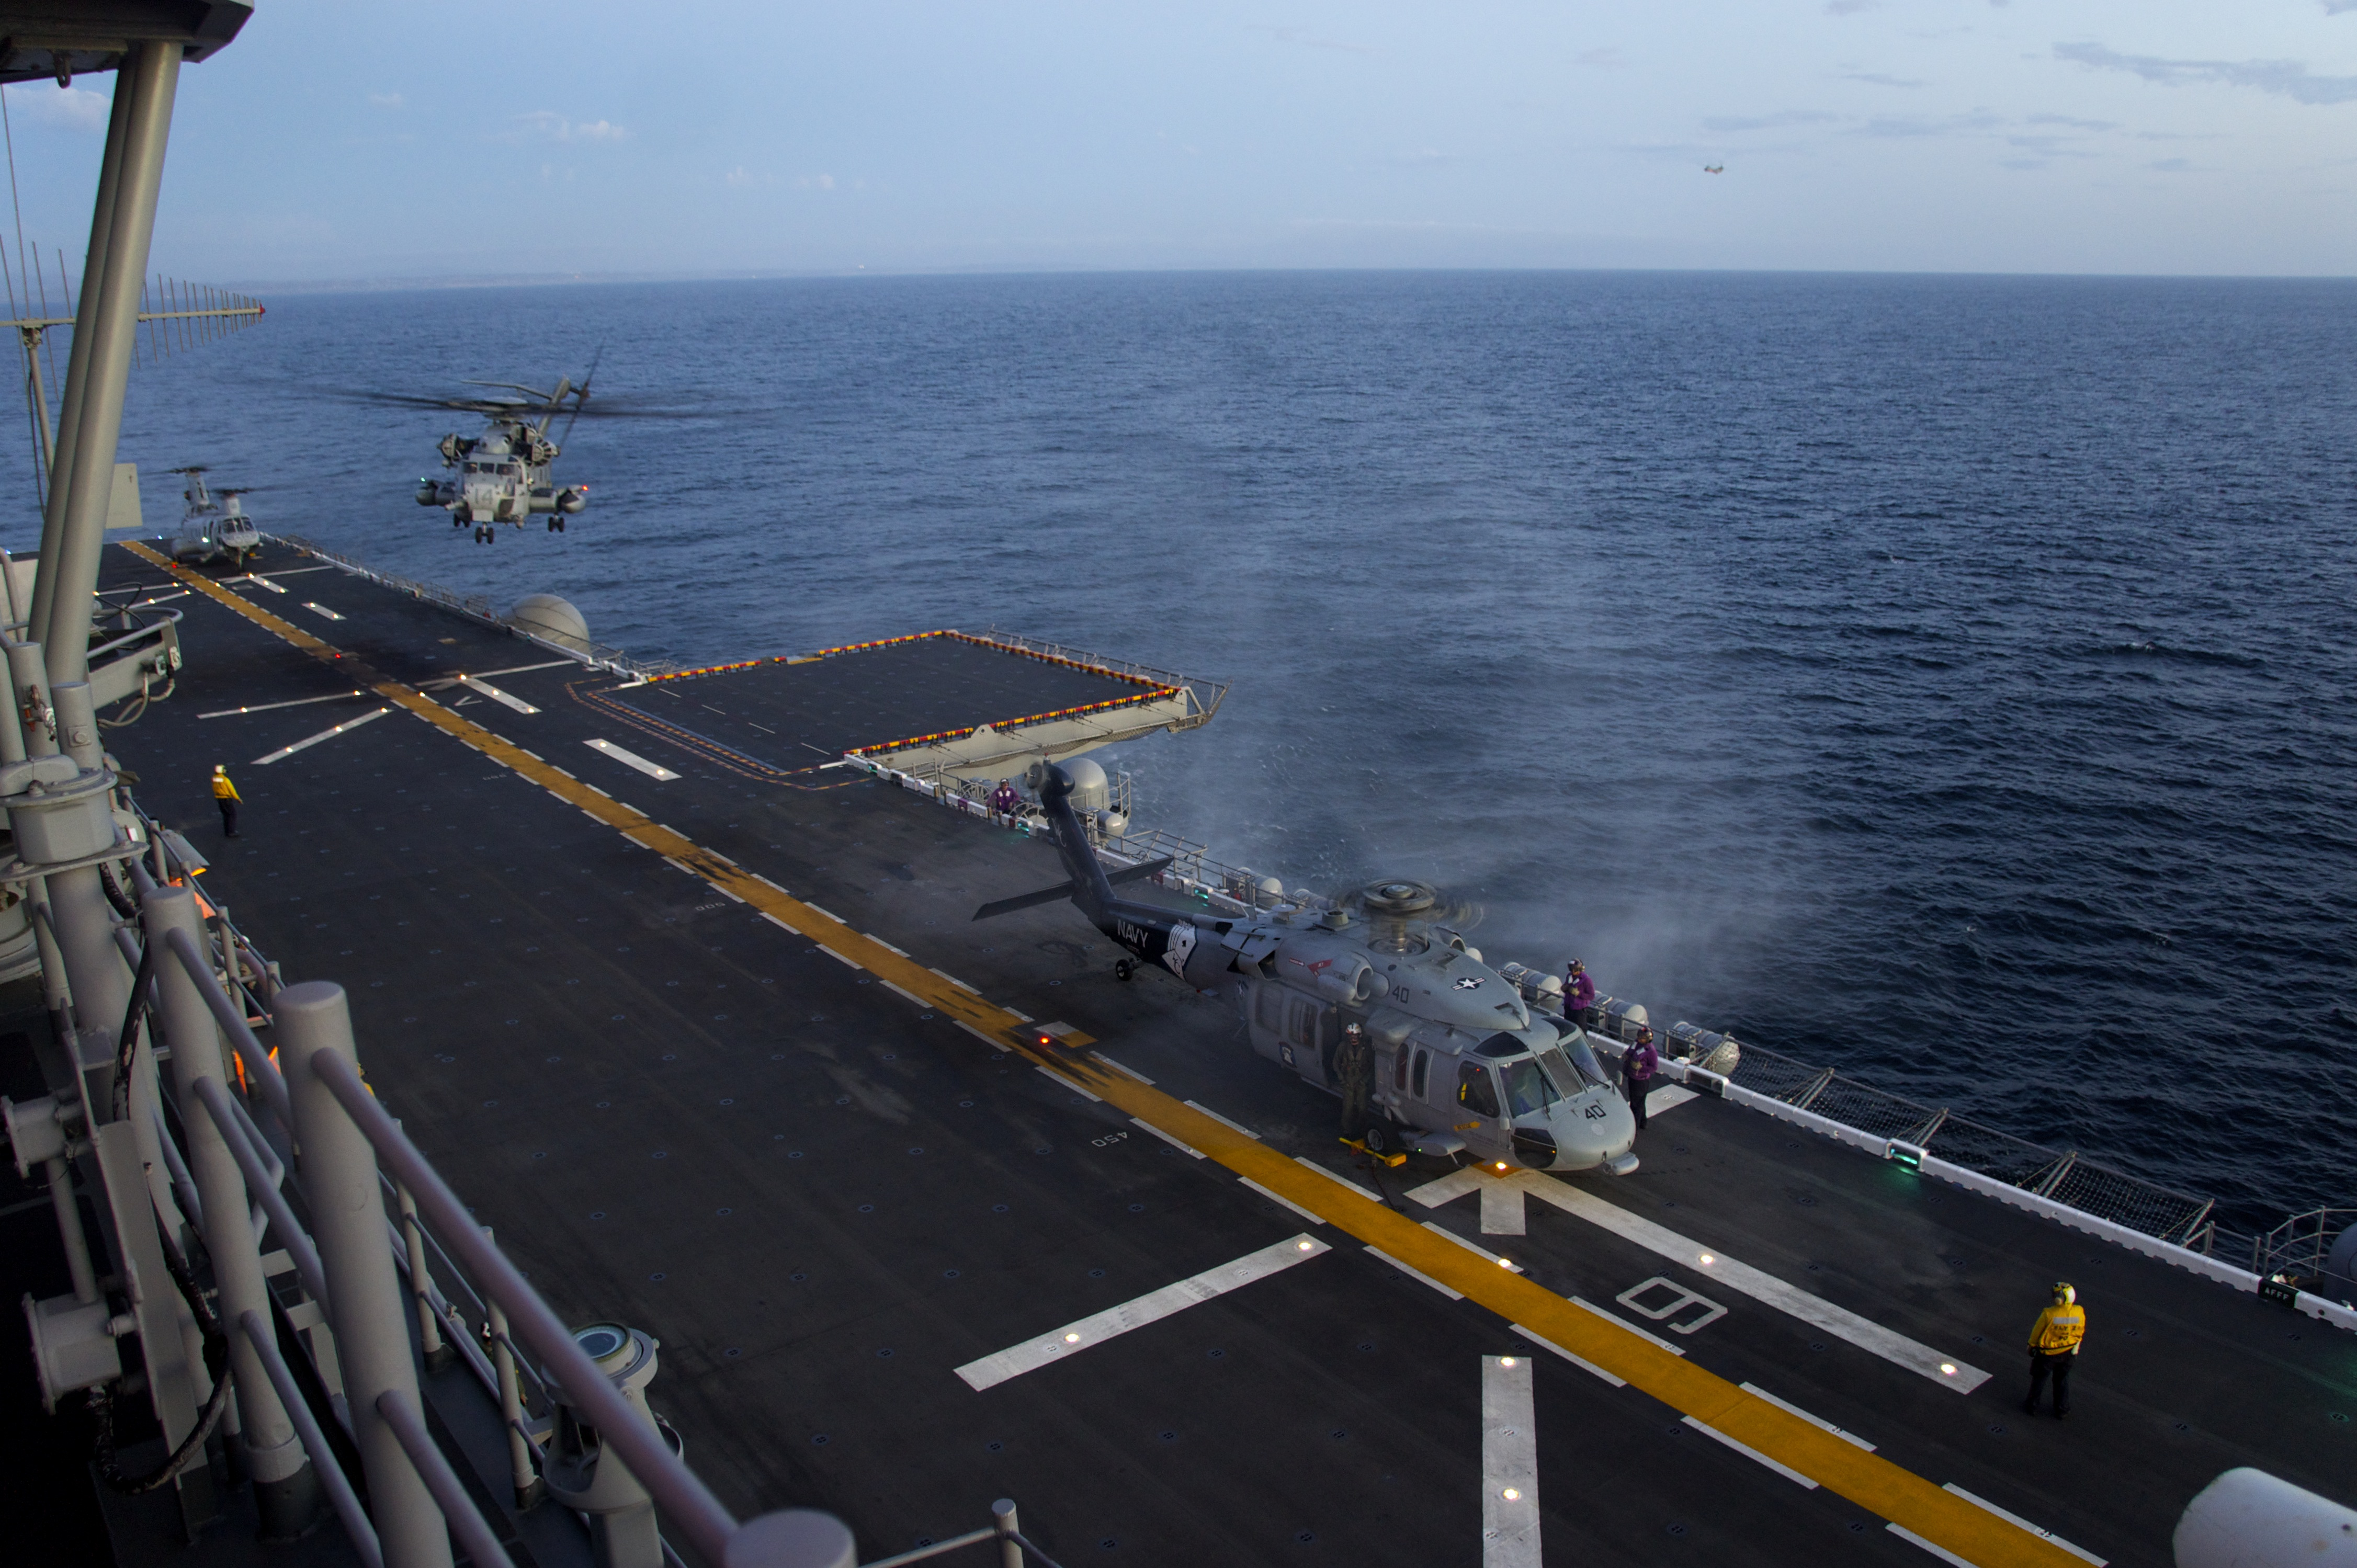 File:Flickr - Official U.S. Navy Imagery - Marines assigned to ...